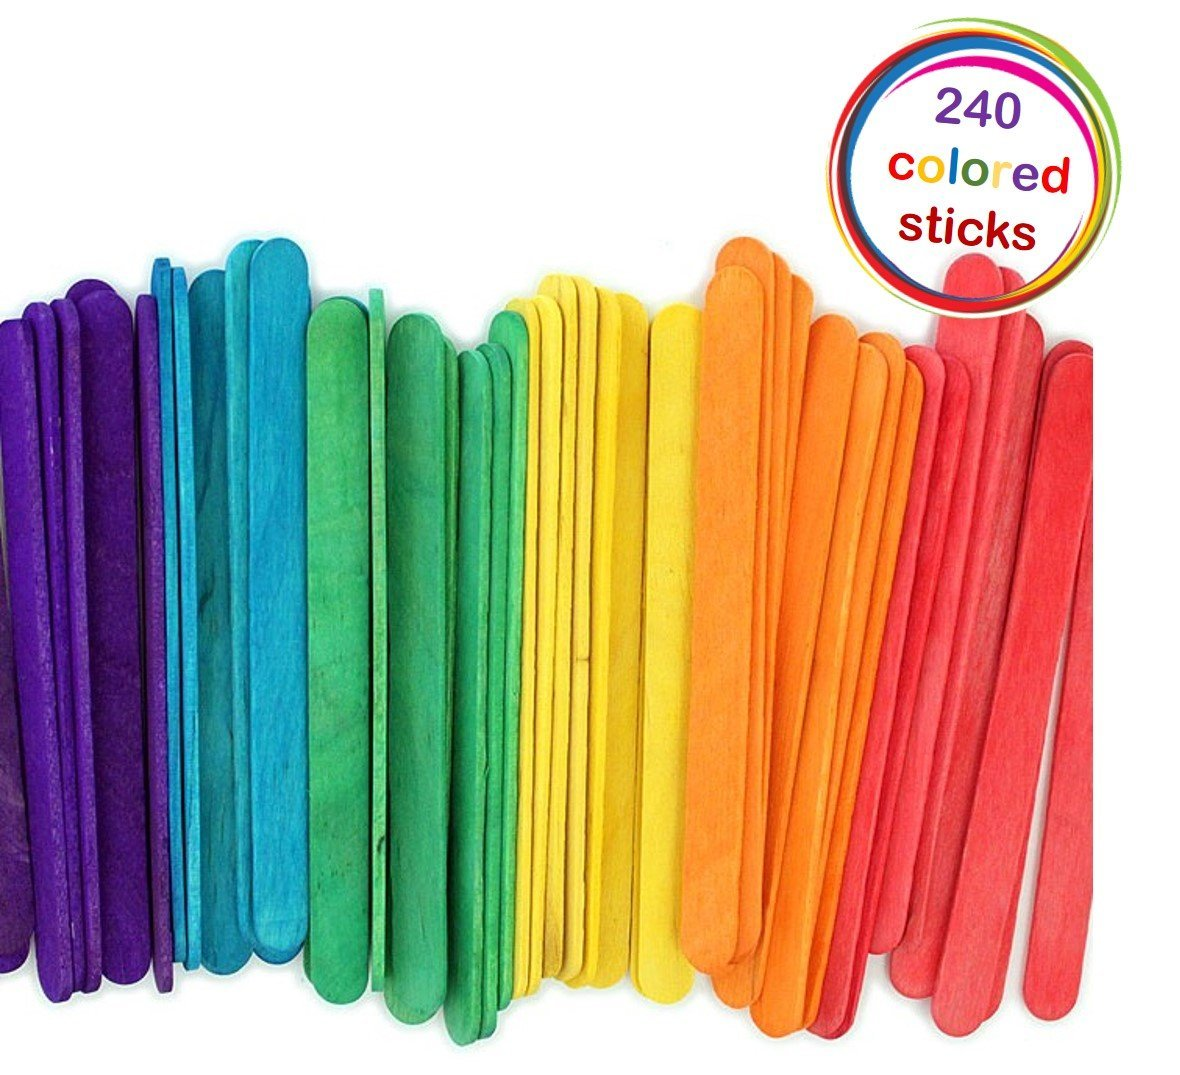 240 Colored Natural Wood Popsicle Sticks Wooden Craft Sticks 4-1/2 x 3/8